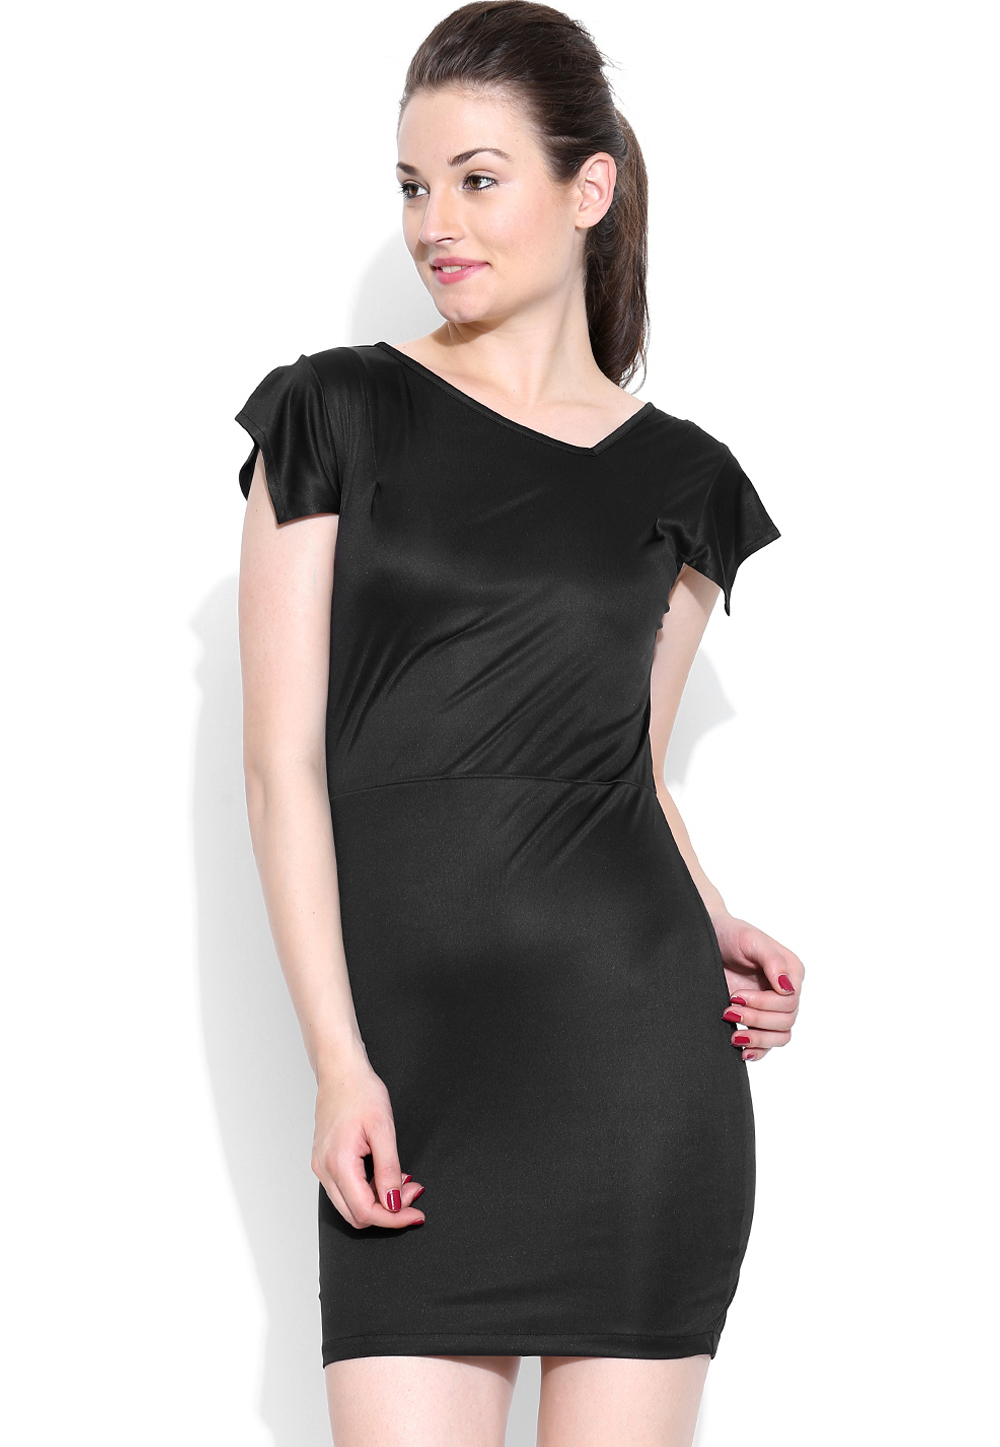 Black Polyester Readymade Party Wear Tops 188723